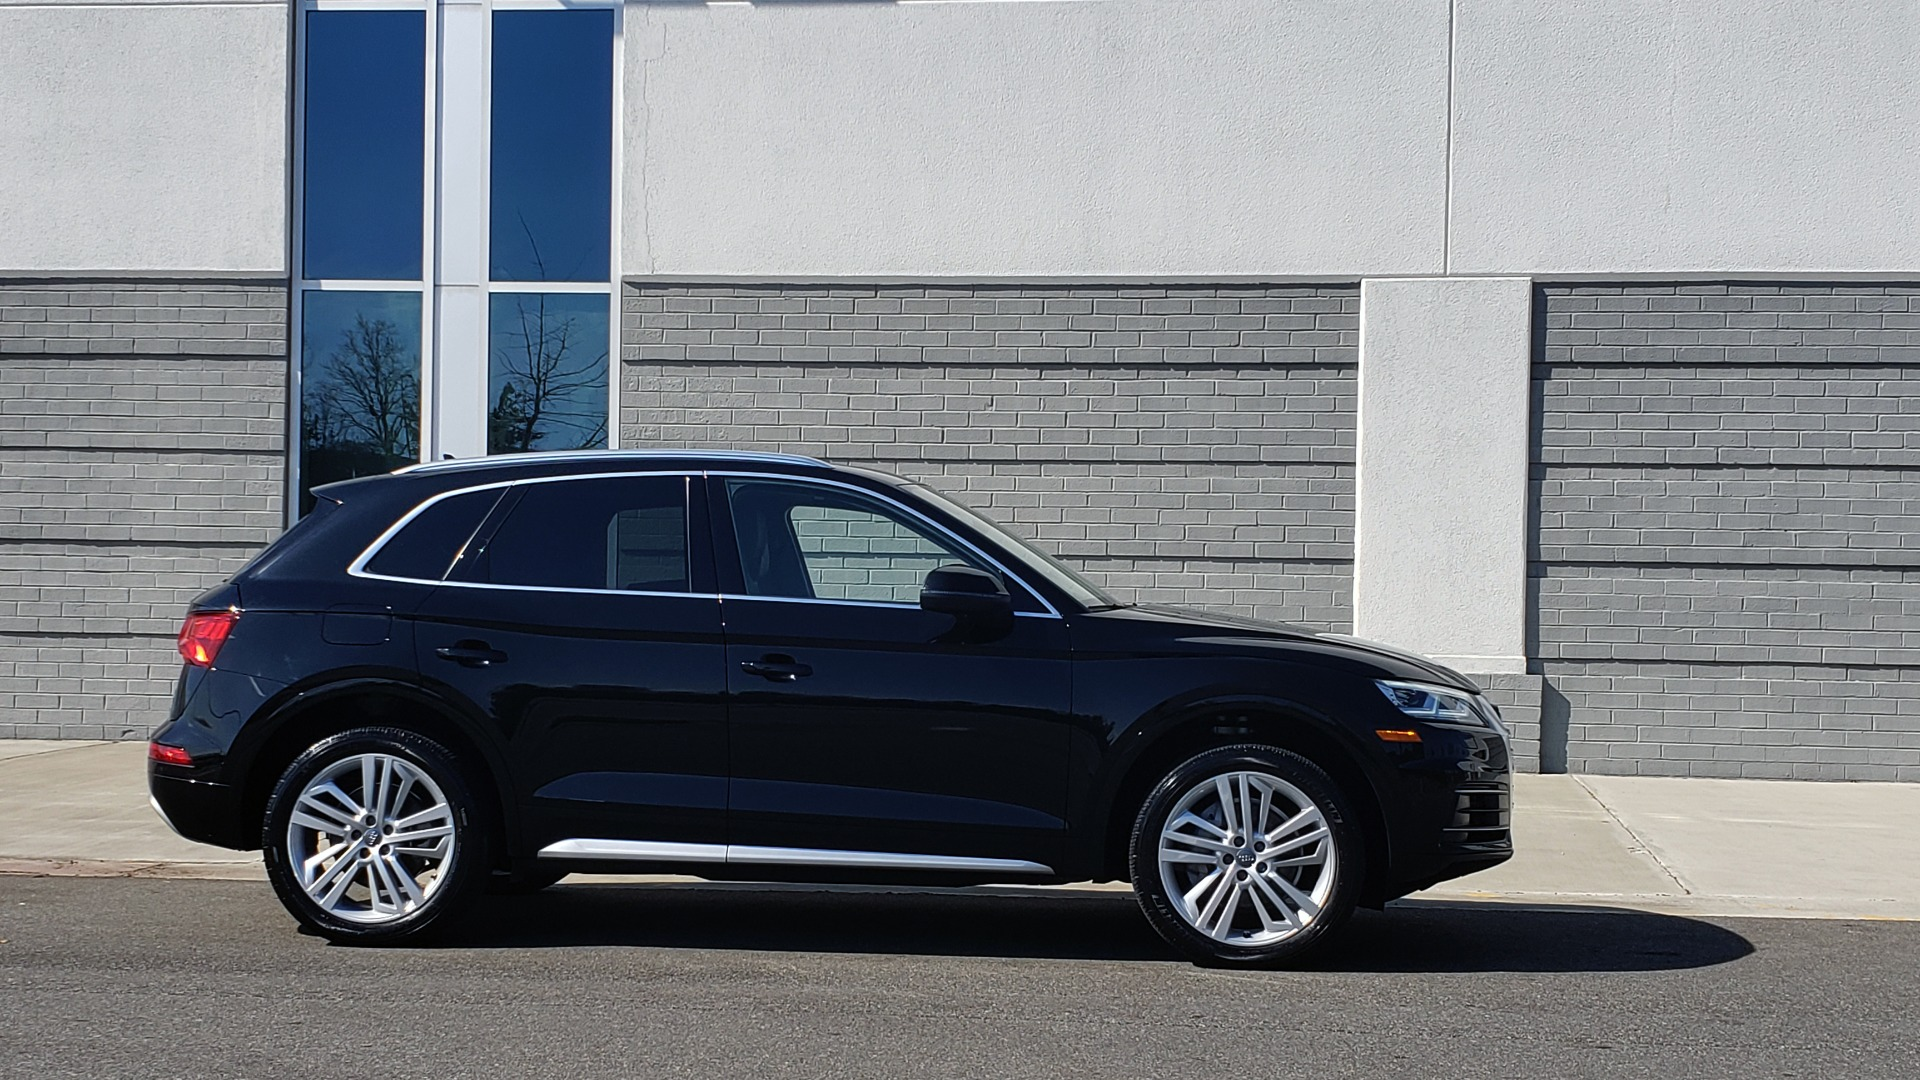 Used 2018 Audi Q5 PREMIUM PLUS / NAV / PANO-ROOF / CLD WTHR / REARVIEW for sale $30,435 at Formula Imports in Charlotte NC 28227 7